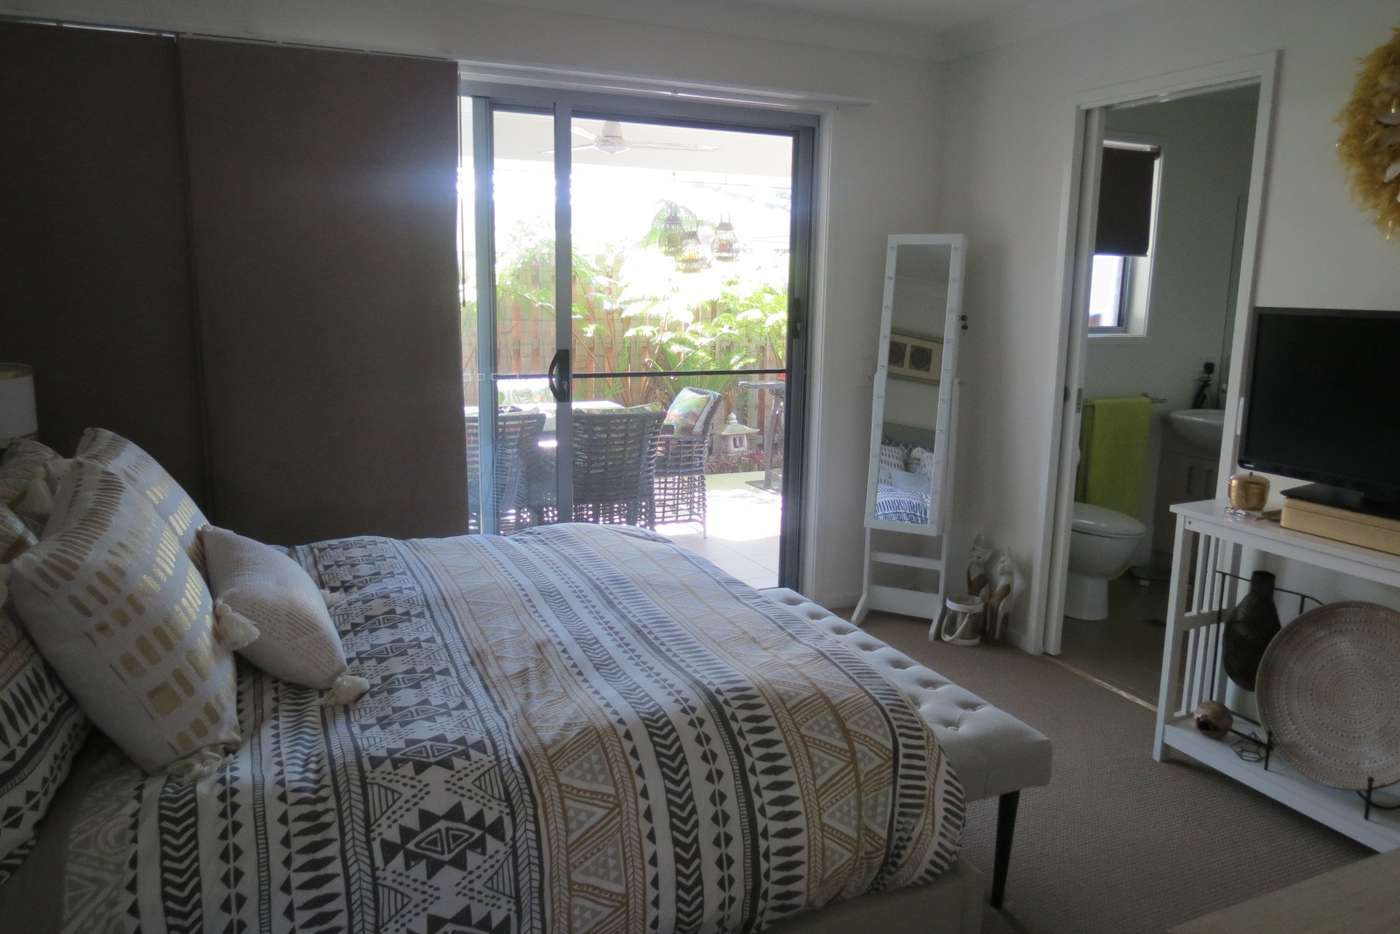 Sixth view of Homely house listing, 16 Blaxland Road, Urraween QLD 4655